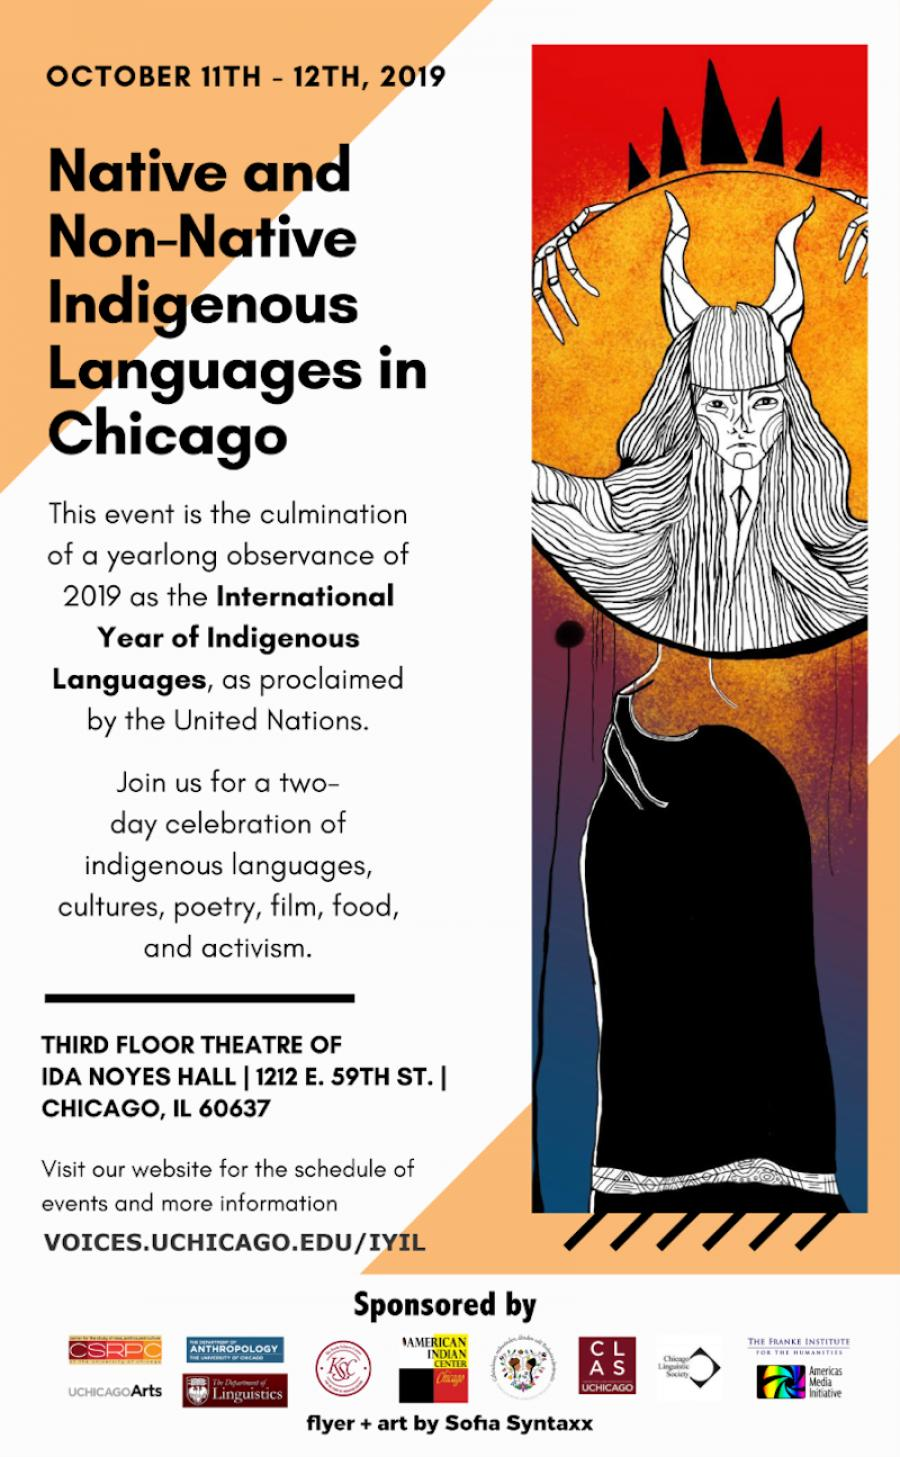 Native and Non-Native Indigenous Languages in Chicago